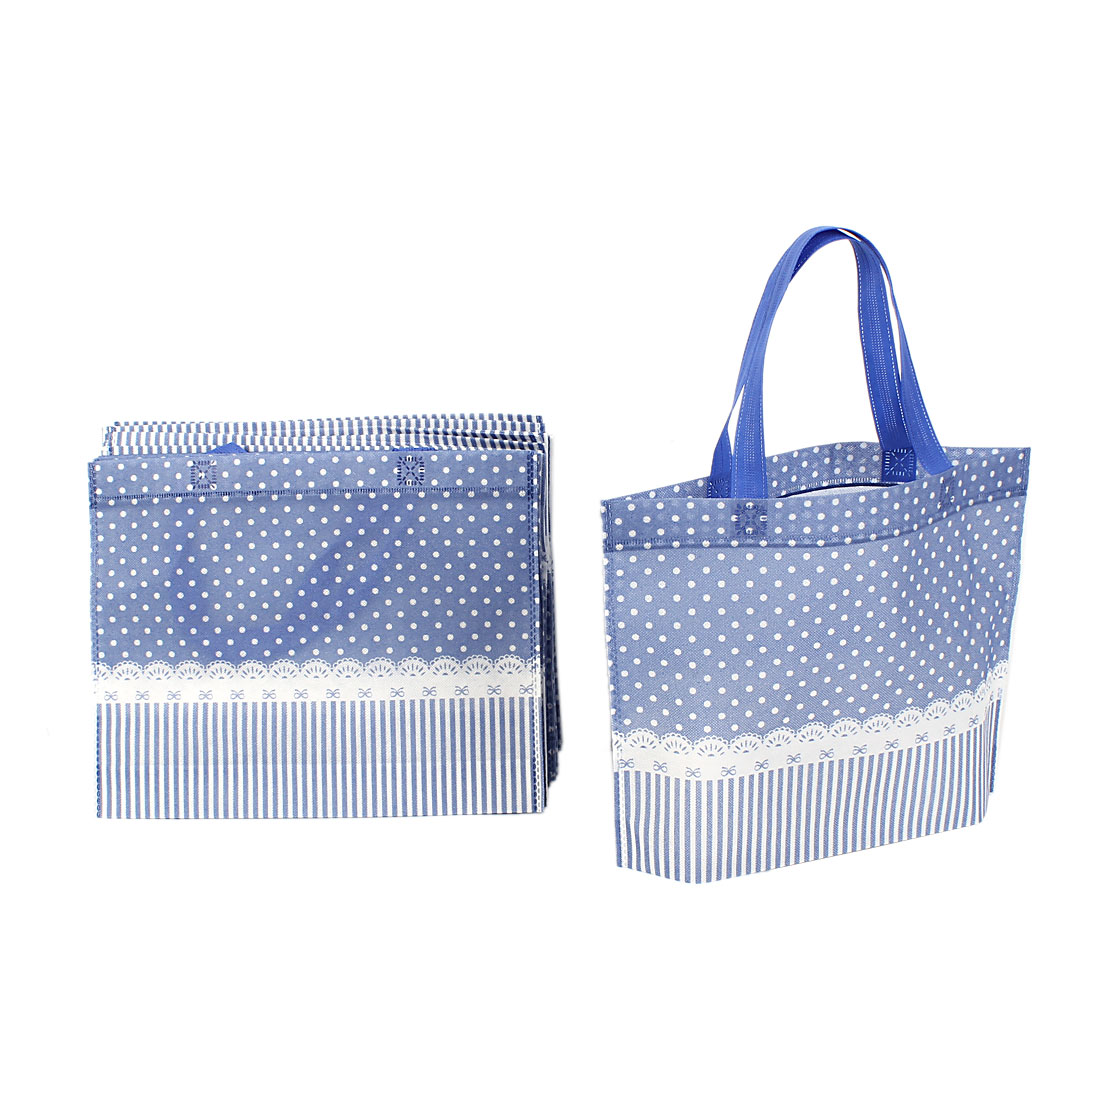 Non Woven Dots Printed Reusable Shopping Bag 35cm x 28cm Blue 20 Pcs